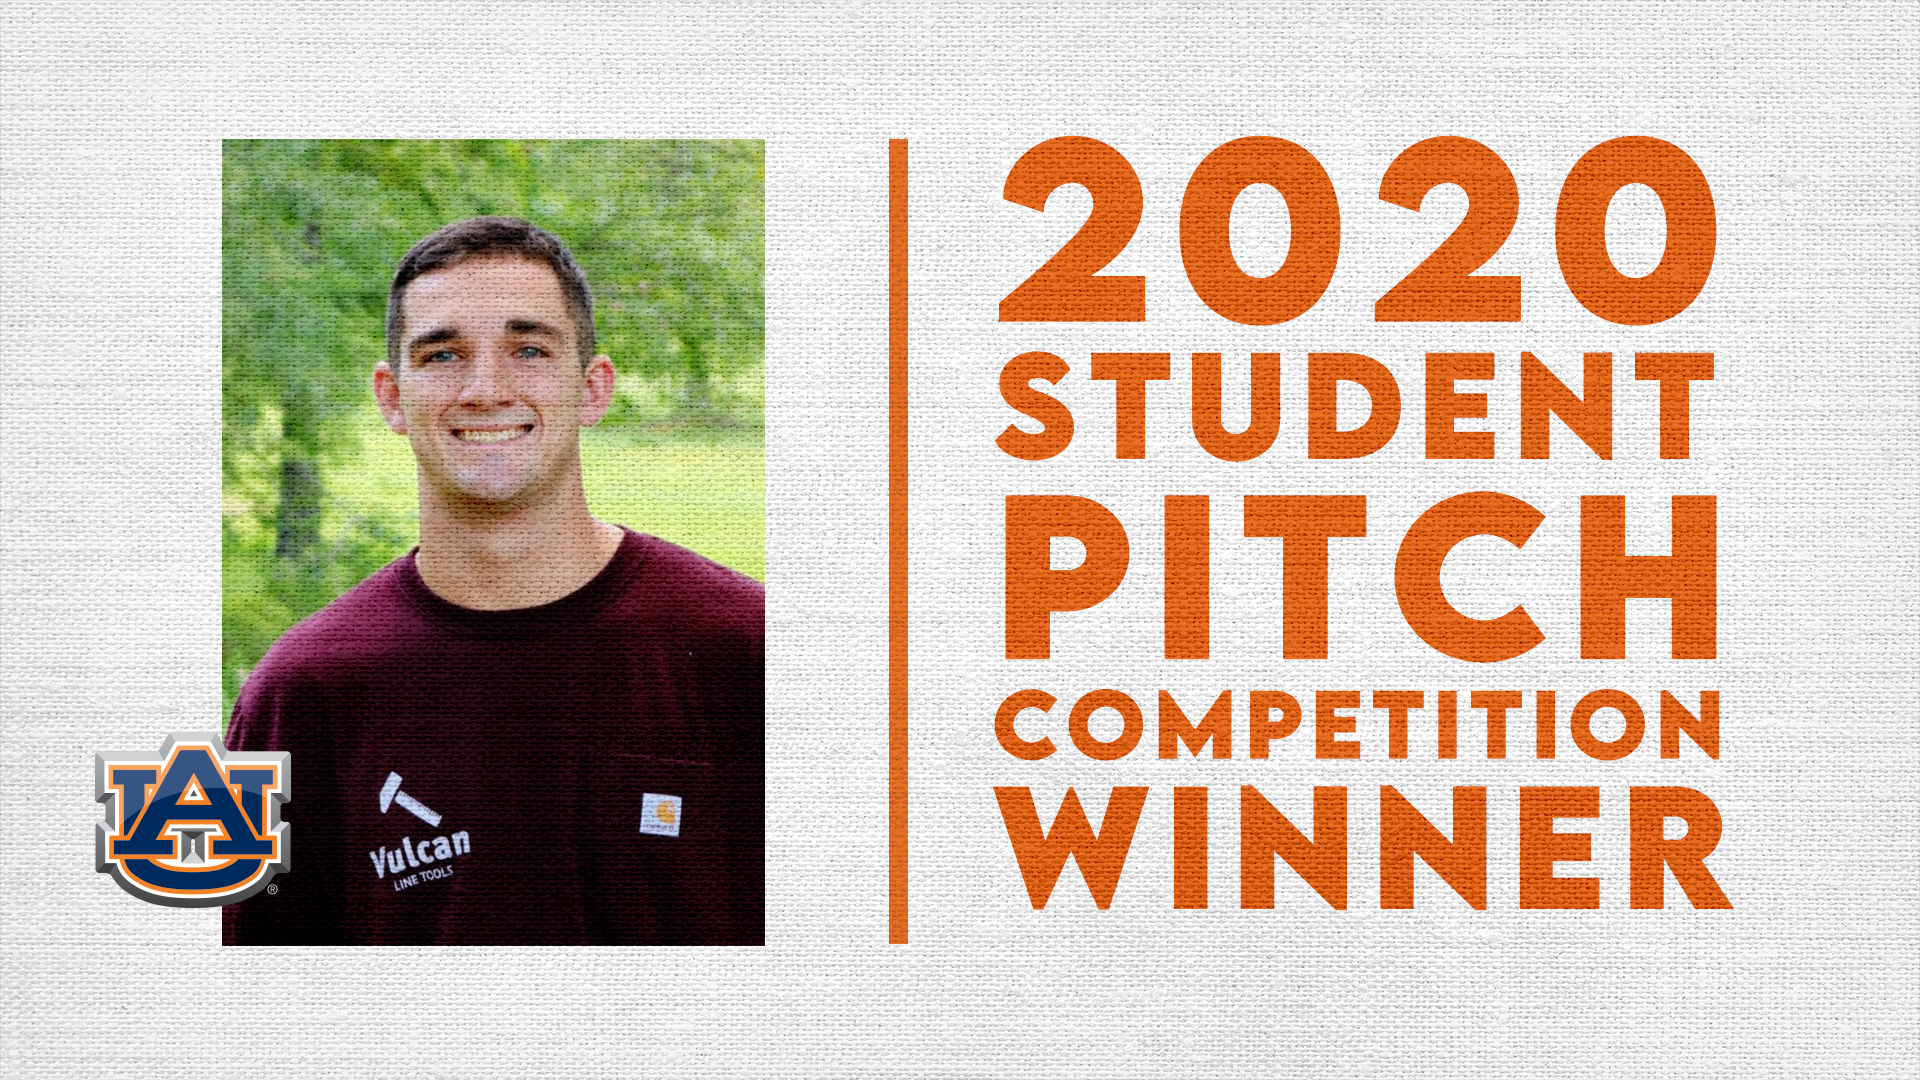 Auburn University's Zac Young wins 2020 SEC Student Pitch Competition